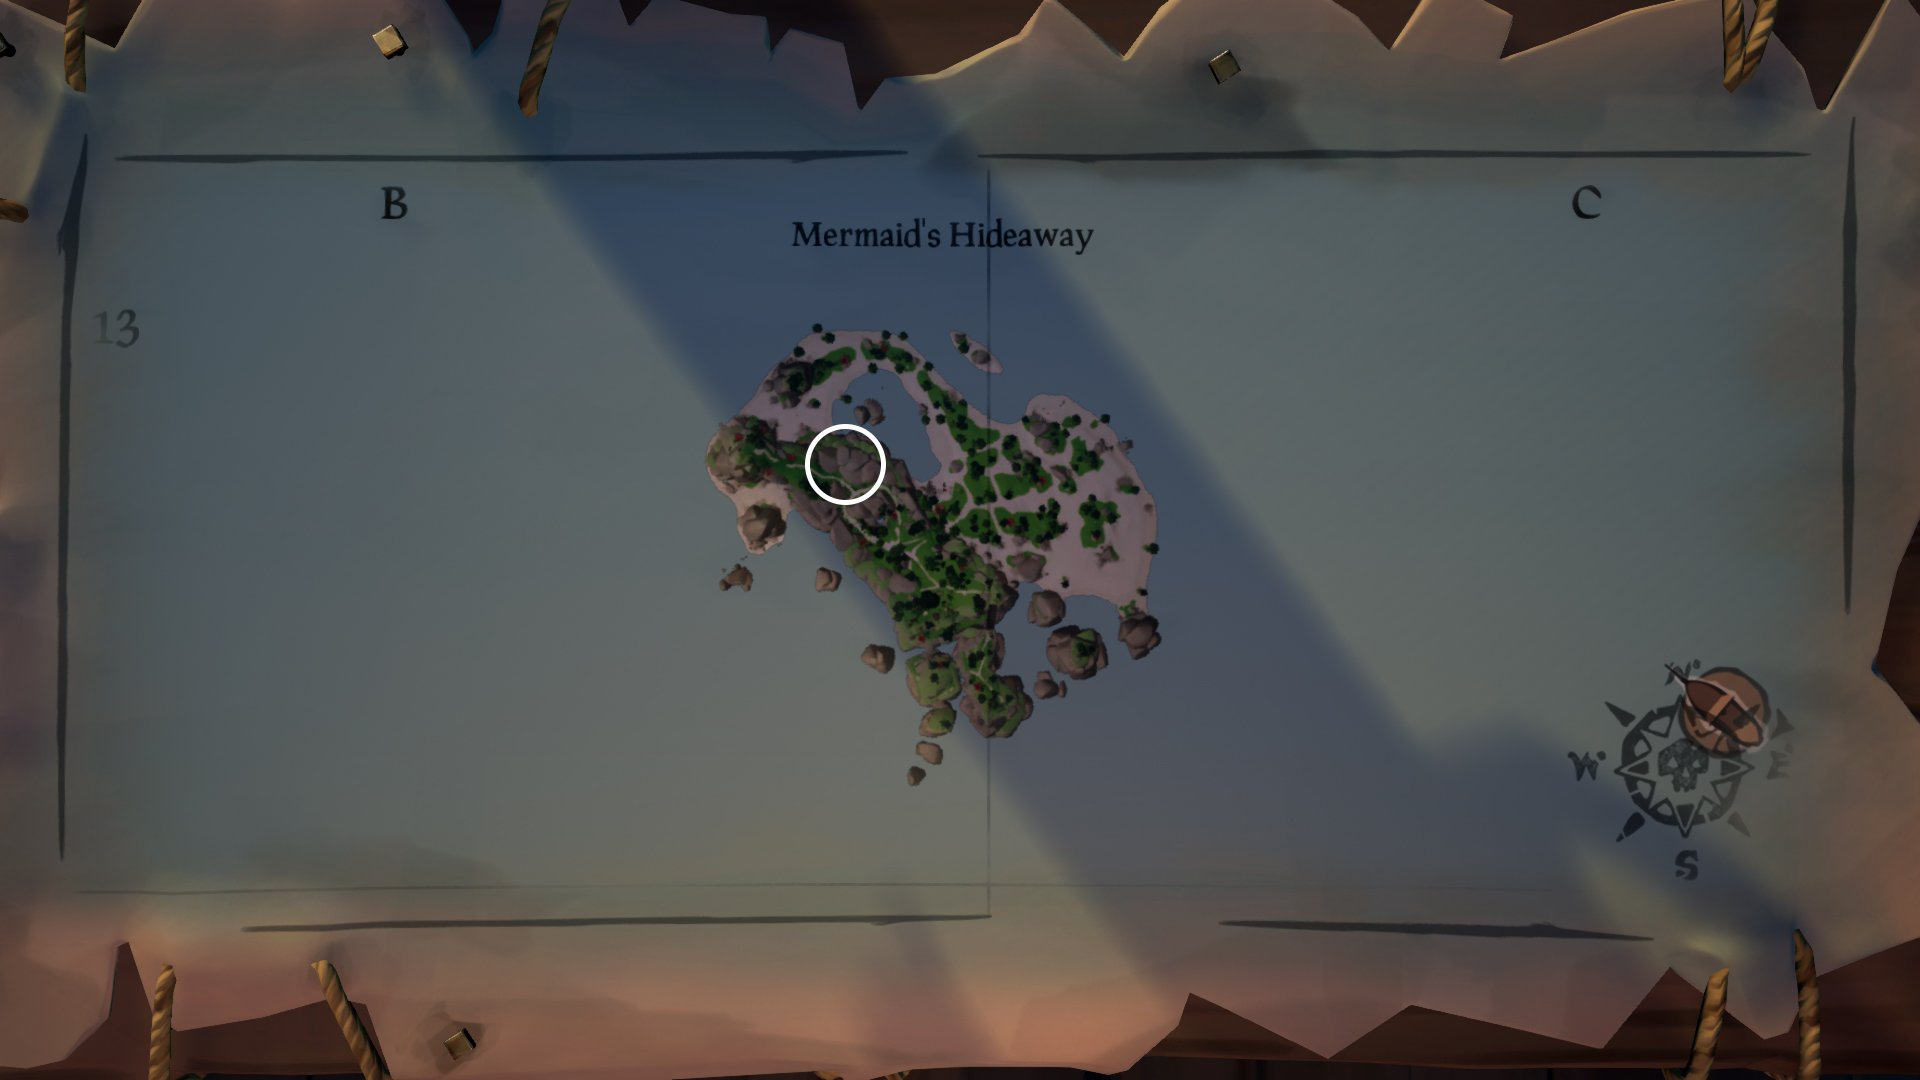 mermaids hideaway beacon sea of thieves